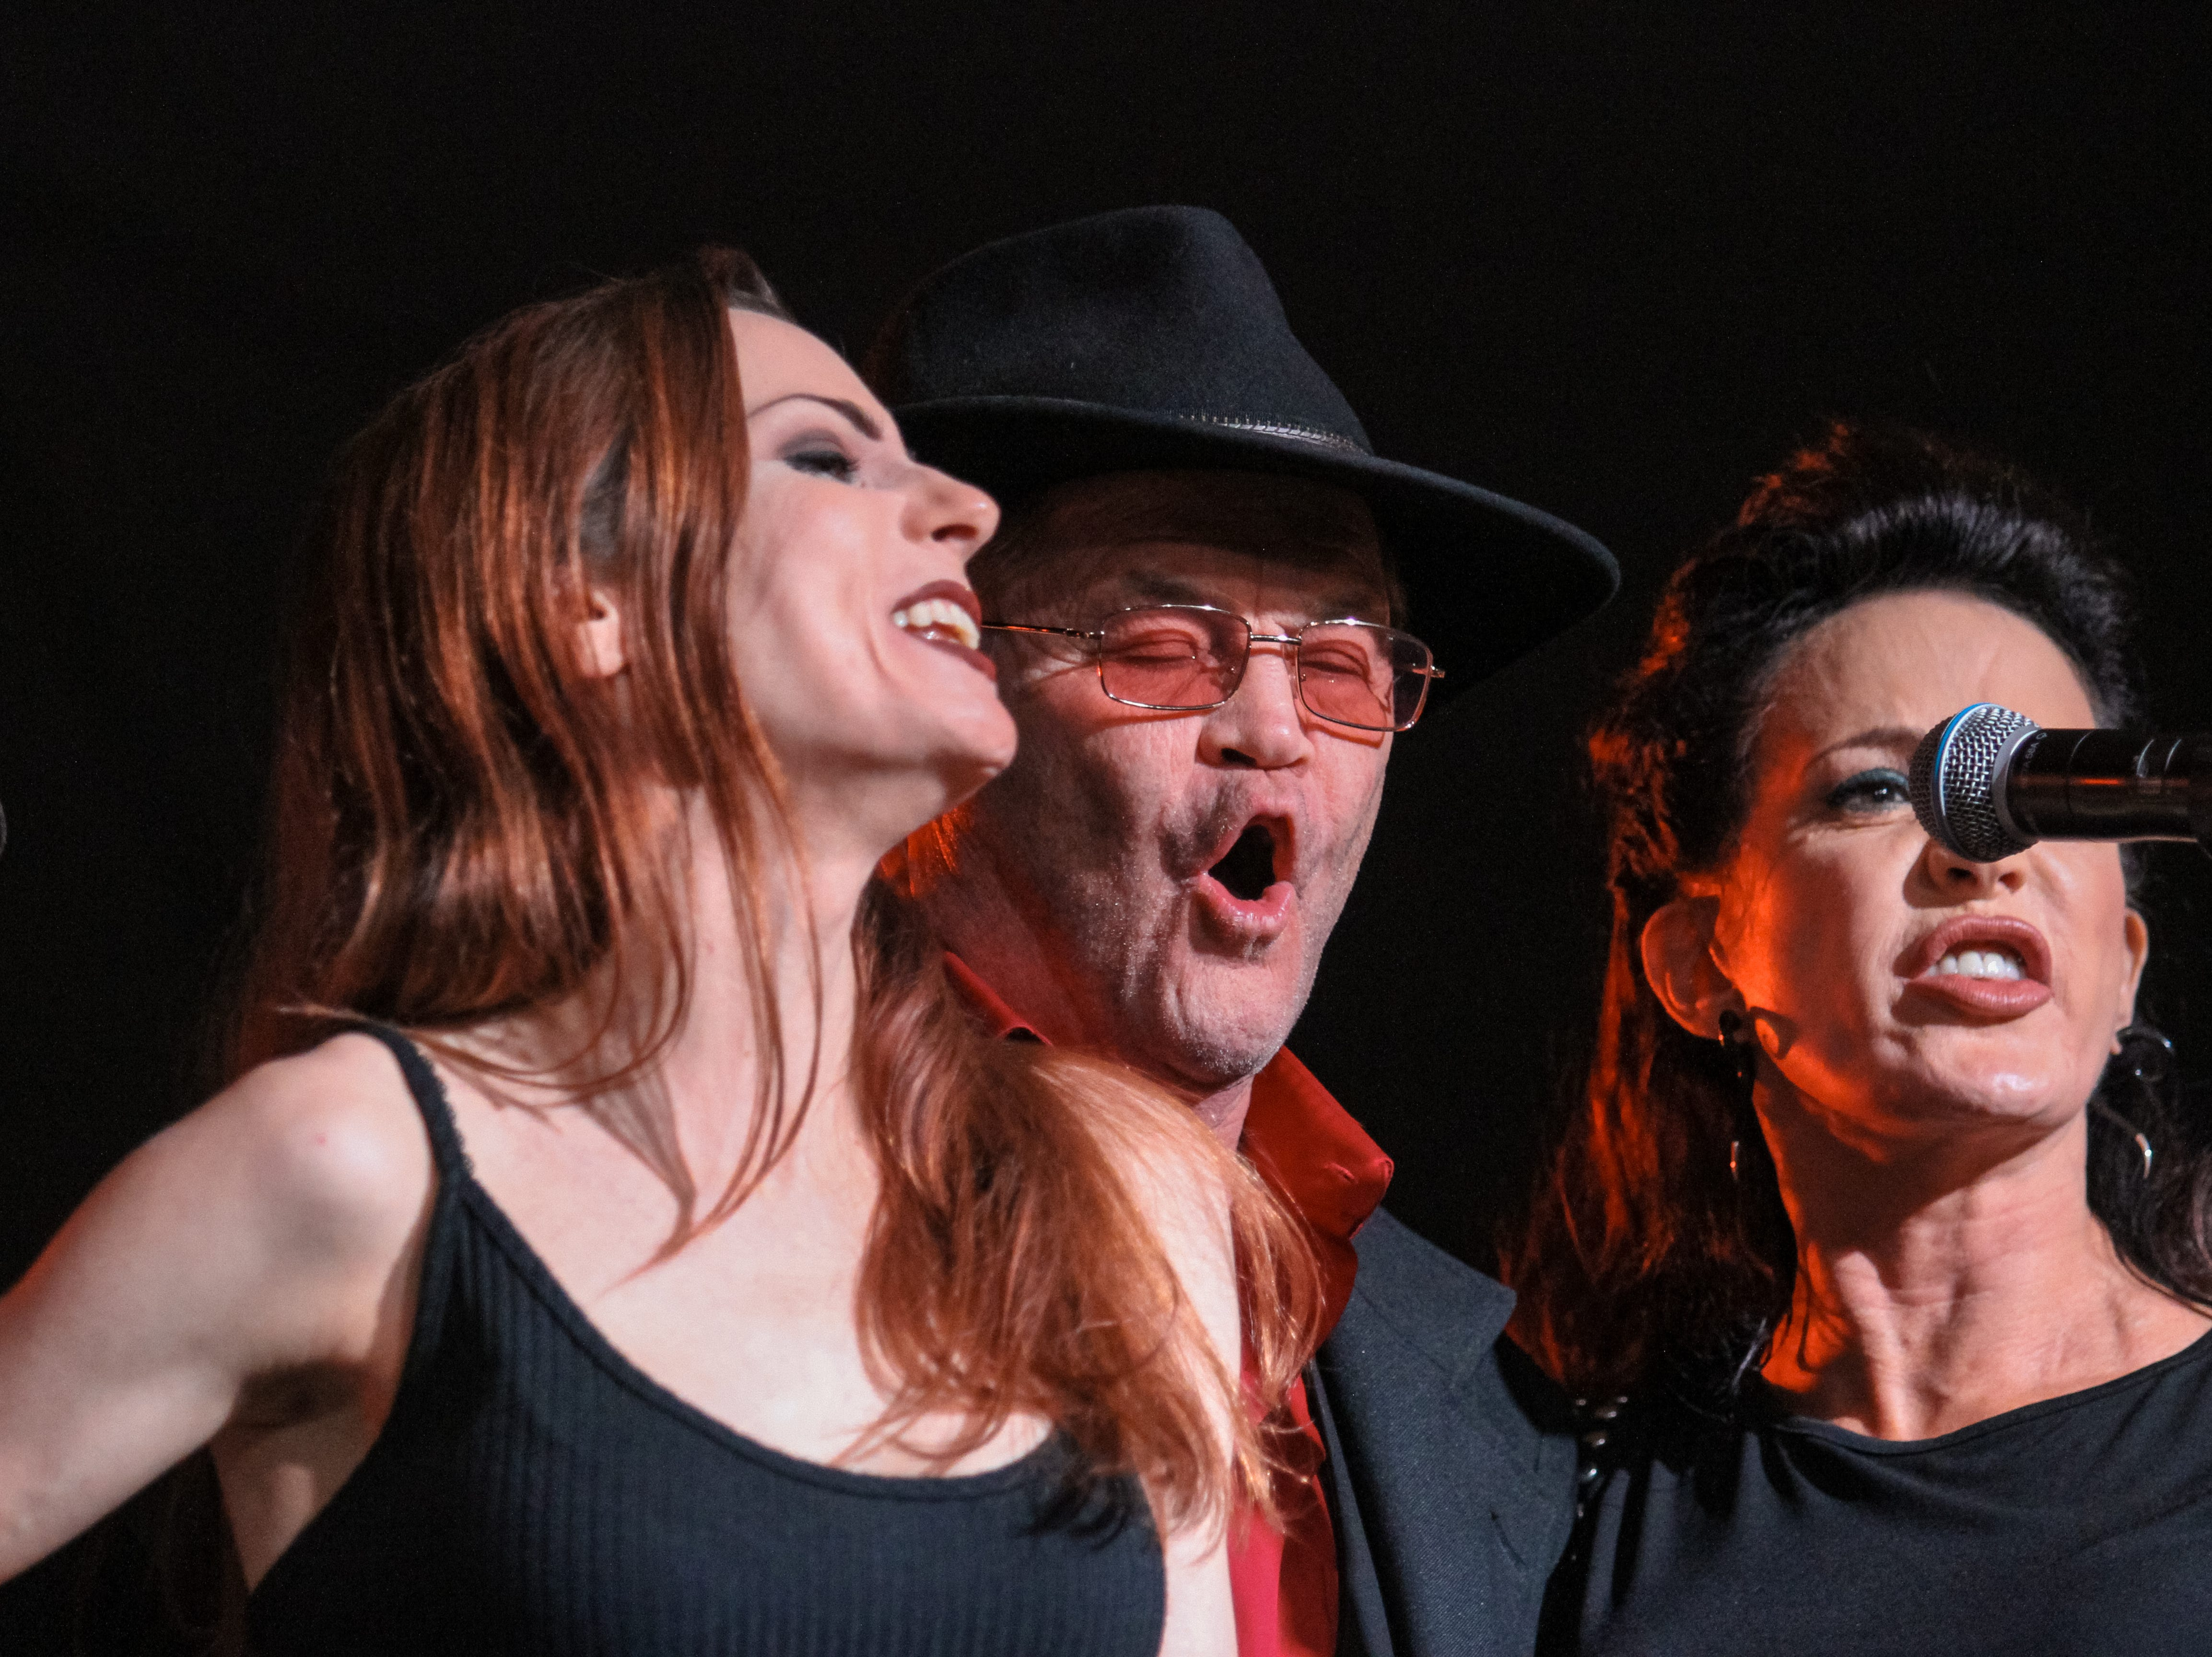 Micky Dolenz of The Monkees and Sheryl Cooper perform at Alice Cooper's Rock & Roll Fundraising Bash at the Las Sendas Golf Club in Mesa on April 27, 2019.